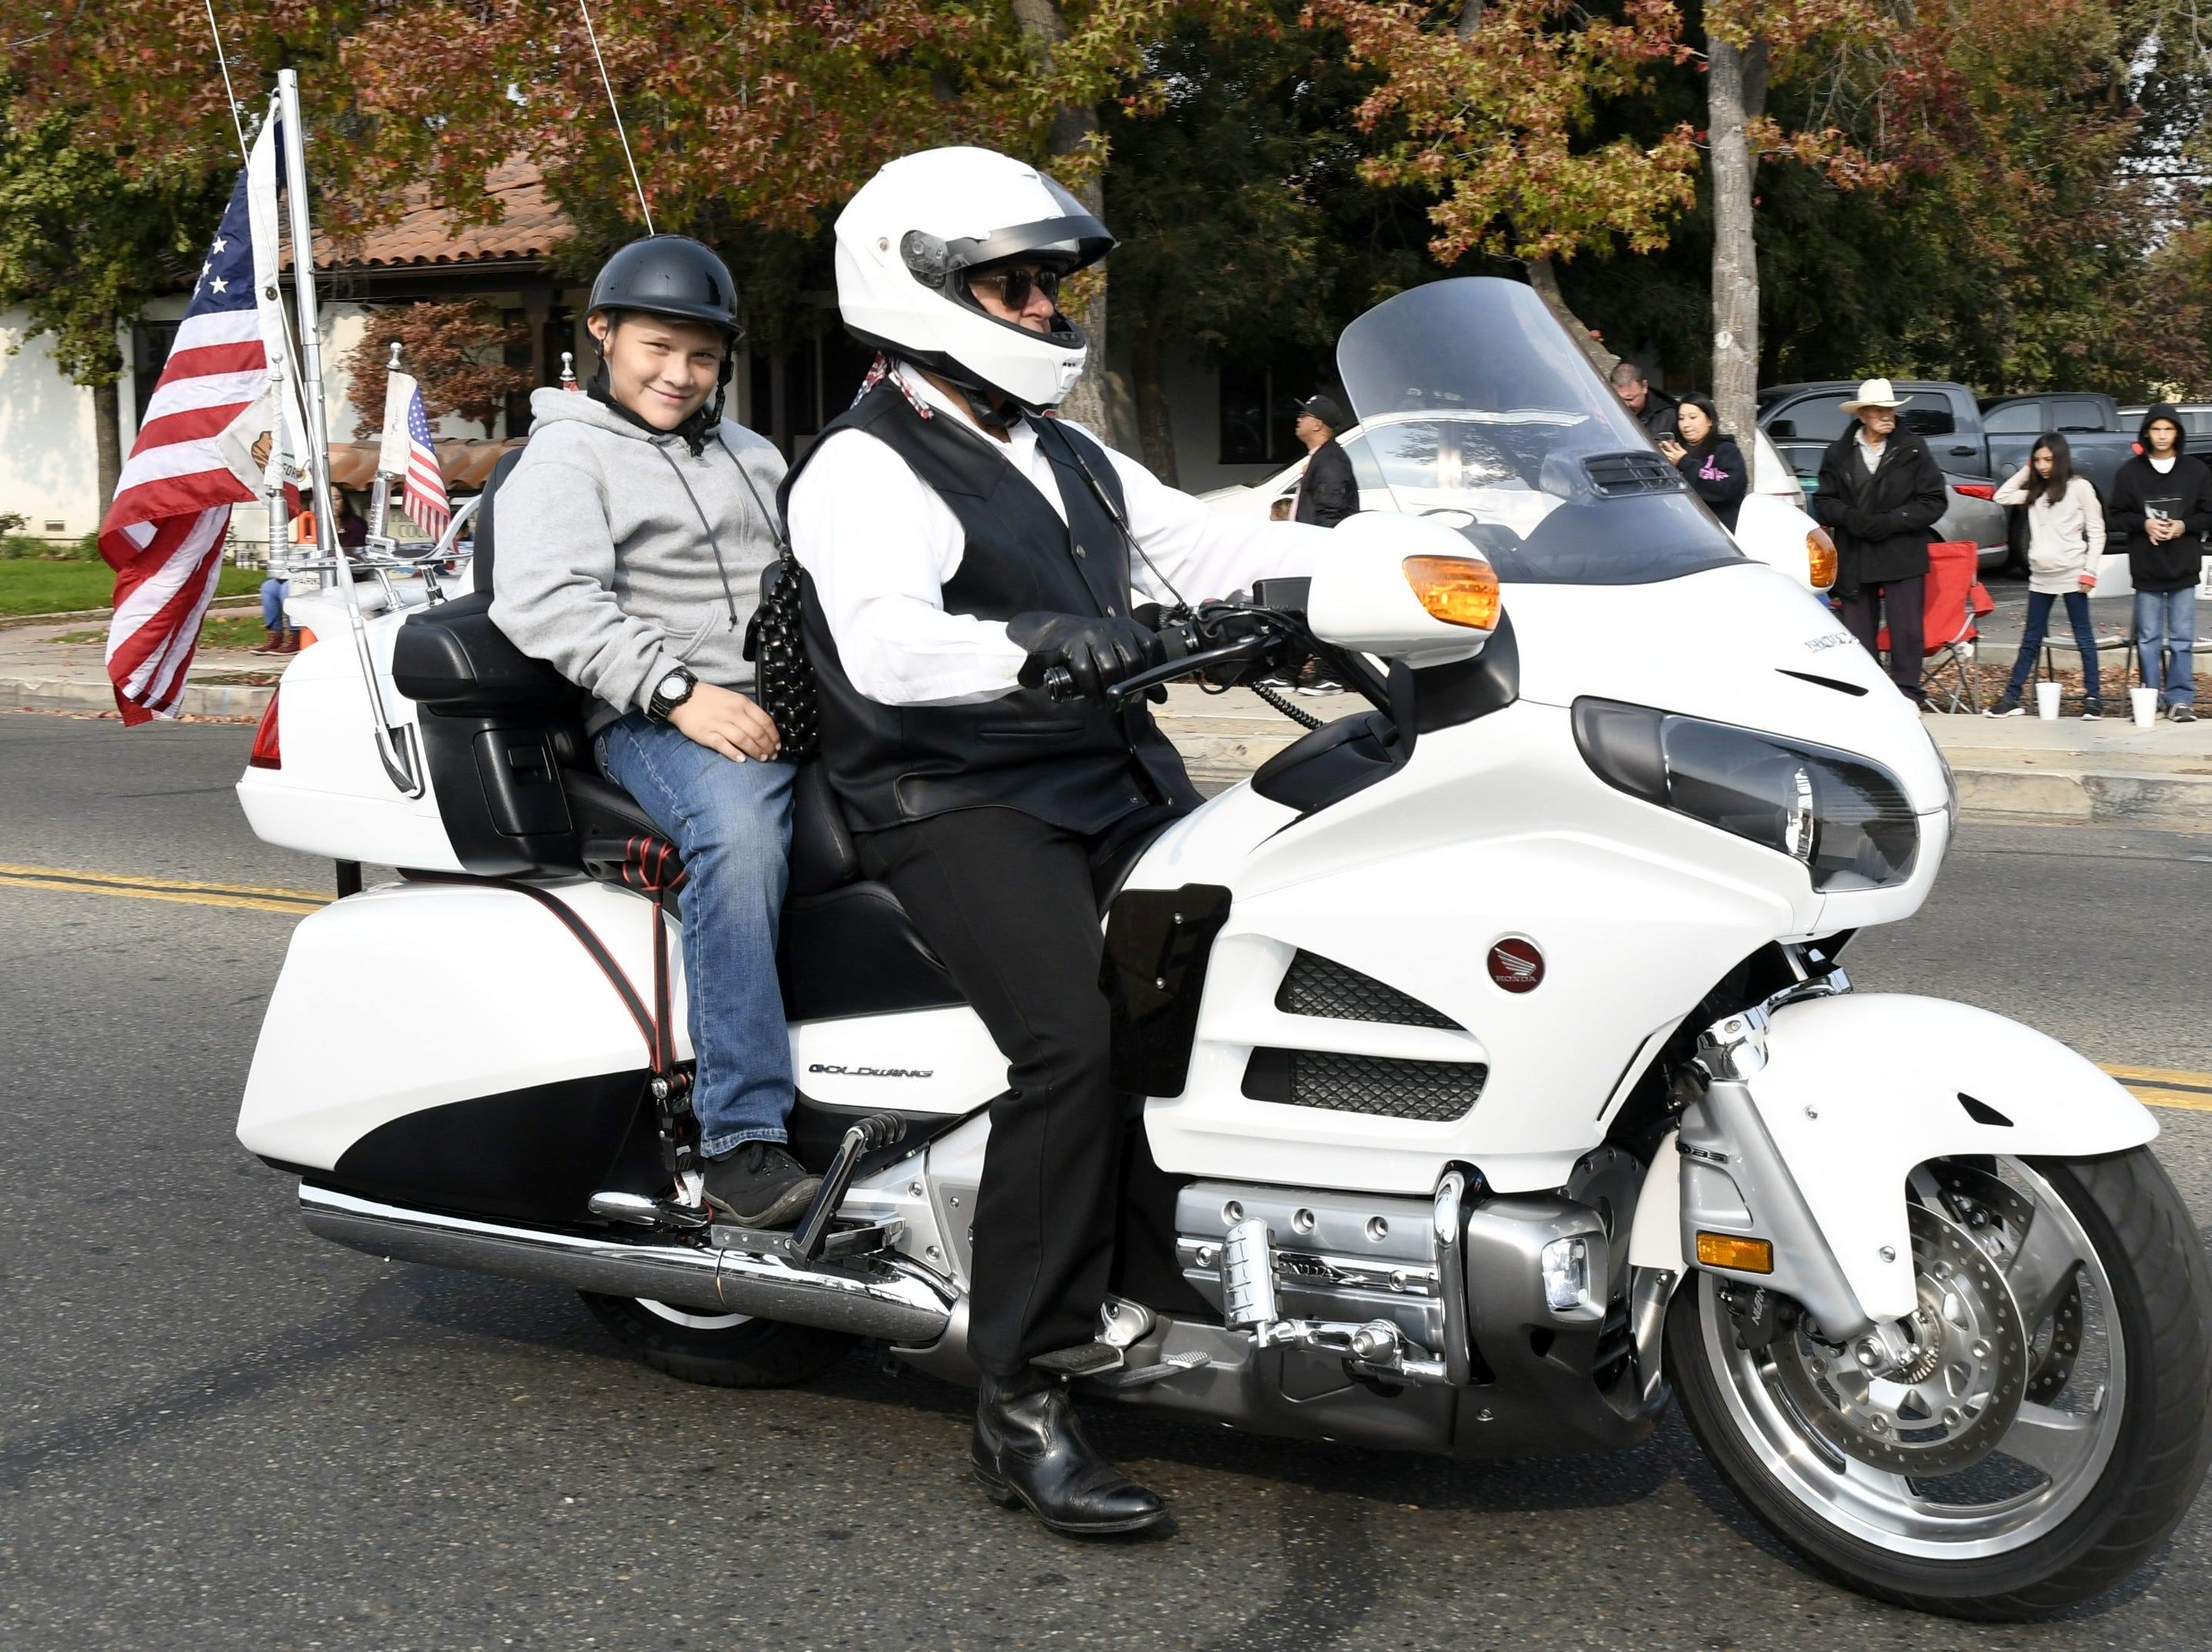 Community members head to downtown Visalia for the annual Veterans Day Parade on Saturday, November 10, 2018.